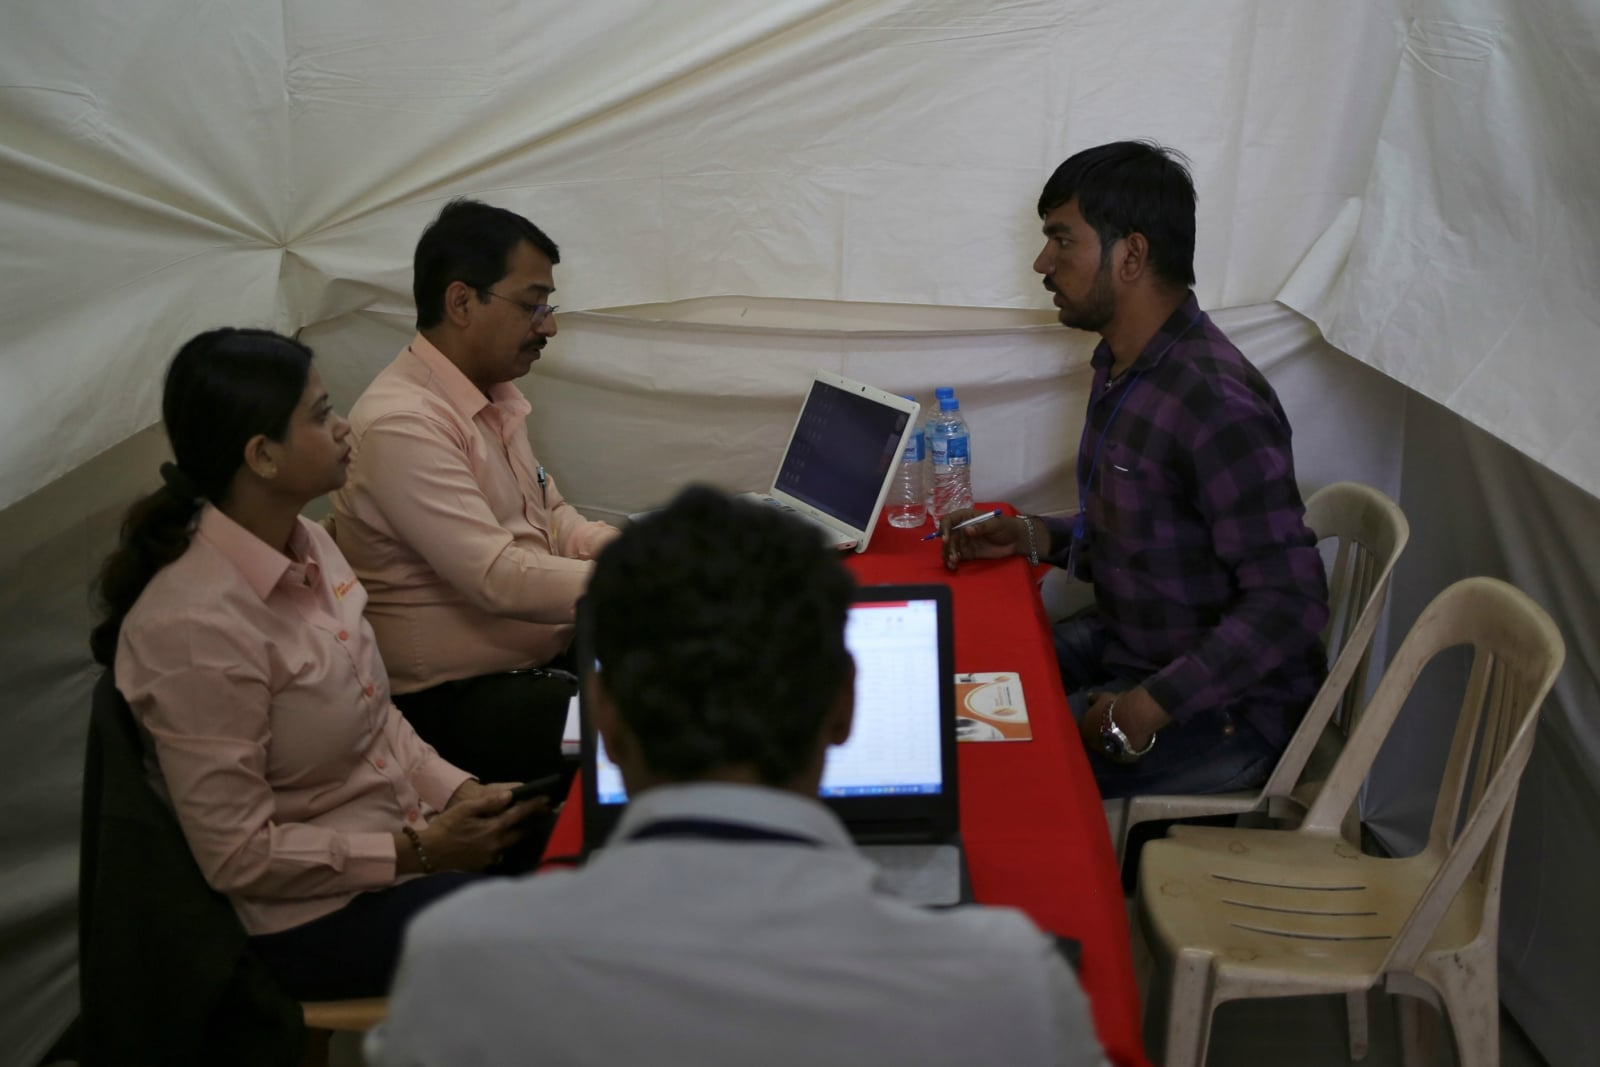 A job seeker is interviewed by human resource managers at a job fair in Chinchwad, February 7, 2019. REUTERS/Danish Siddiqui/Files